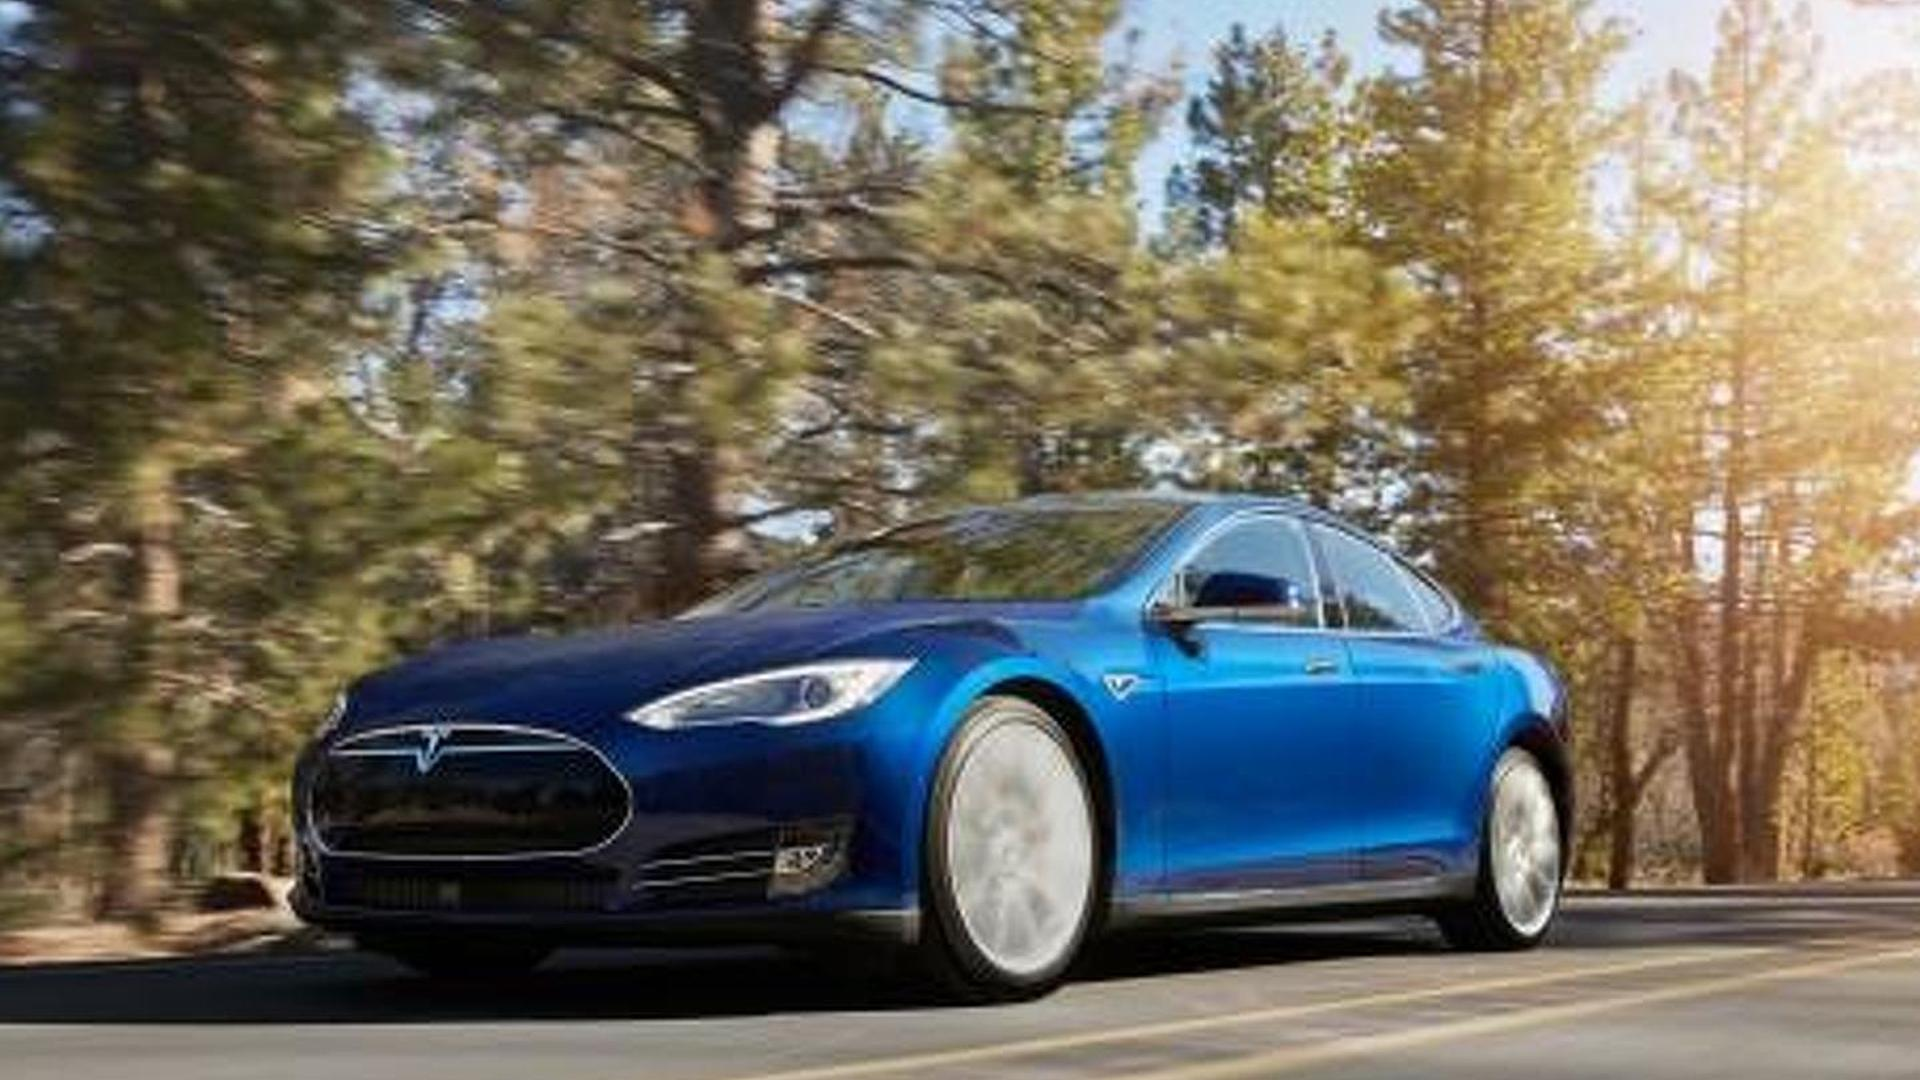 Tesla Model S 70D entry-level version announced with all-wheel drive and 514 bhp